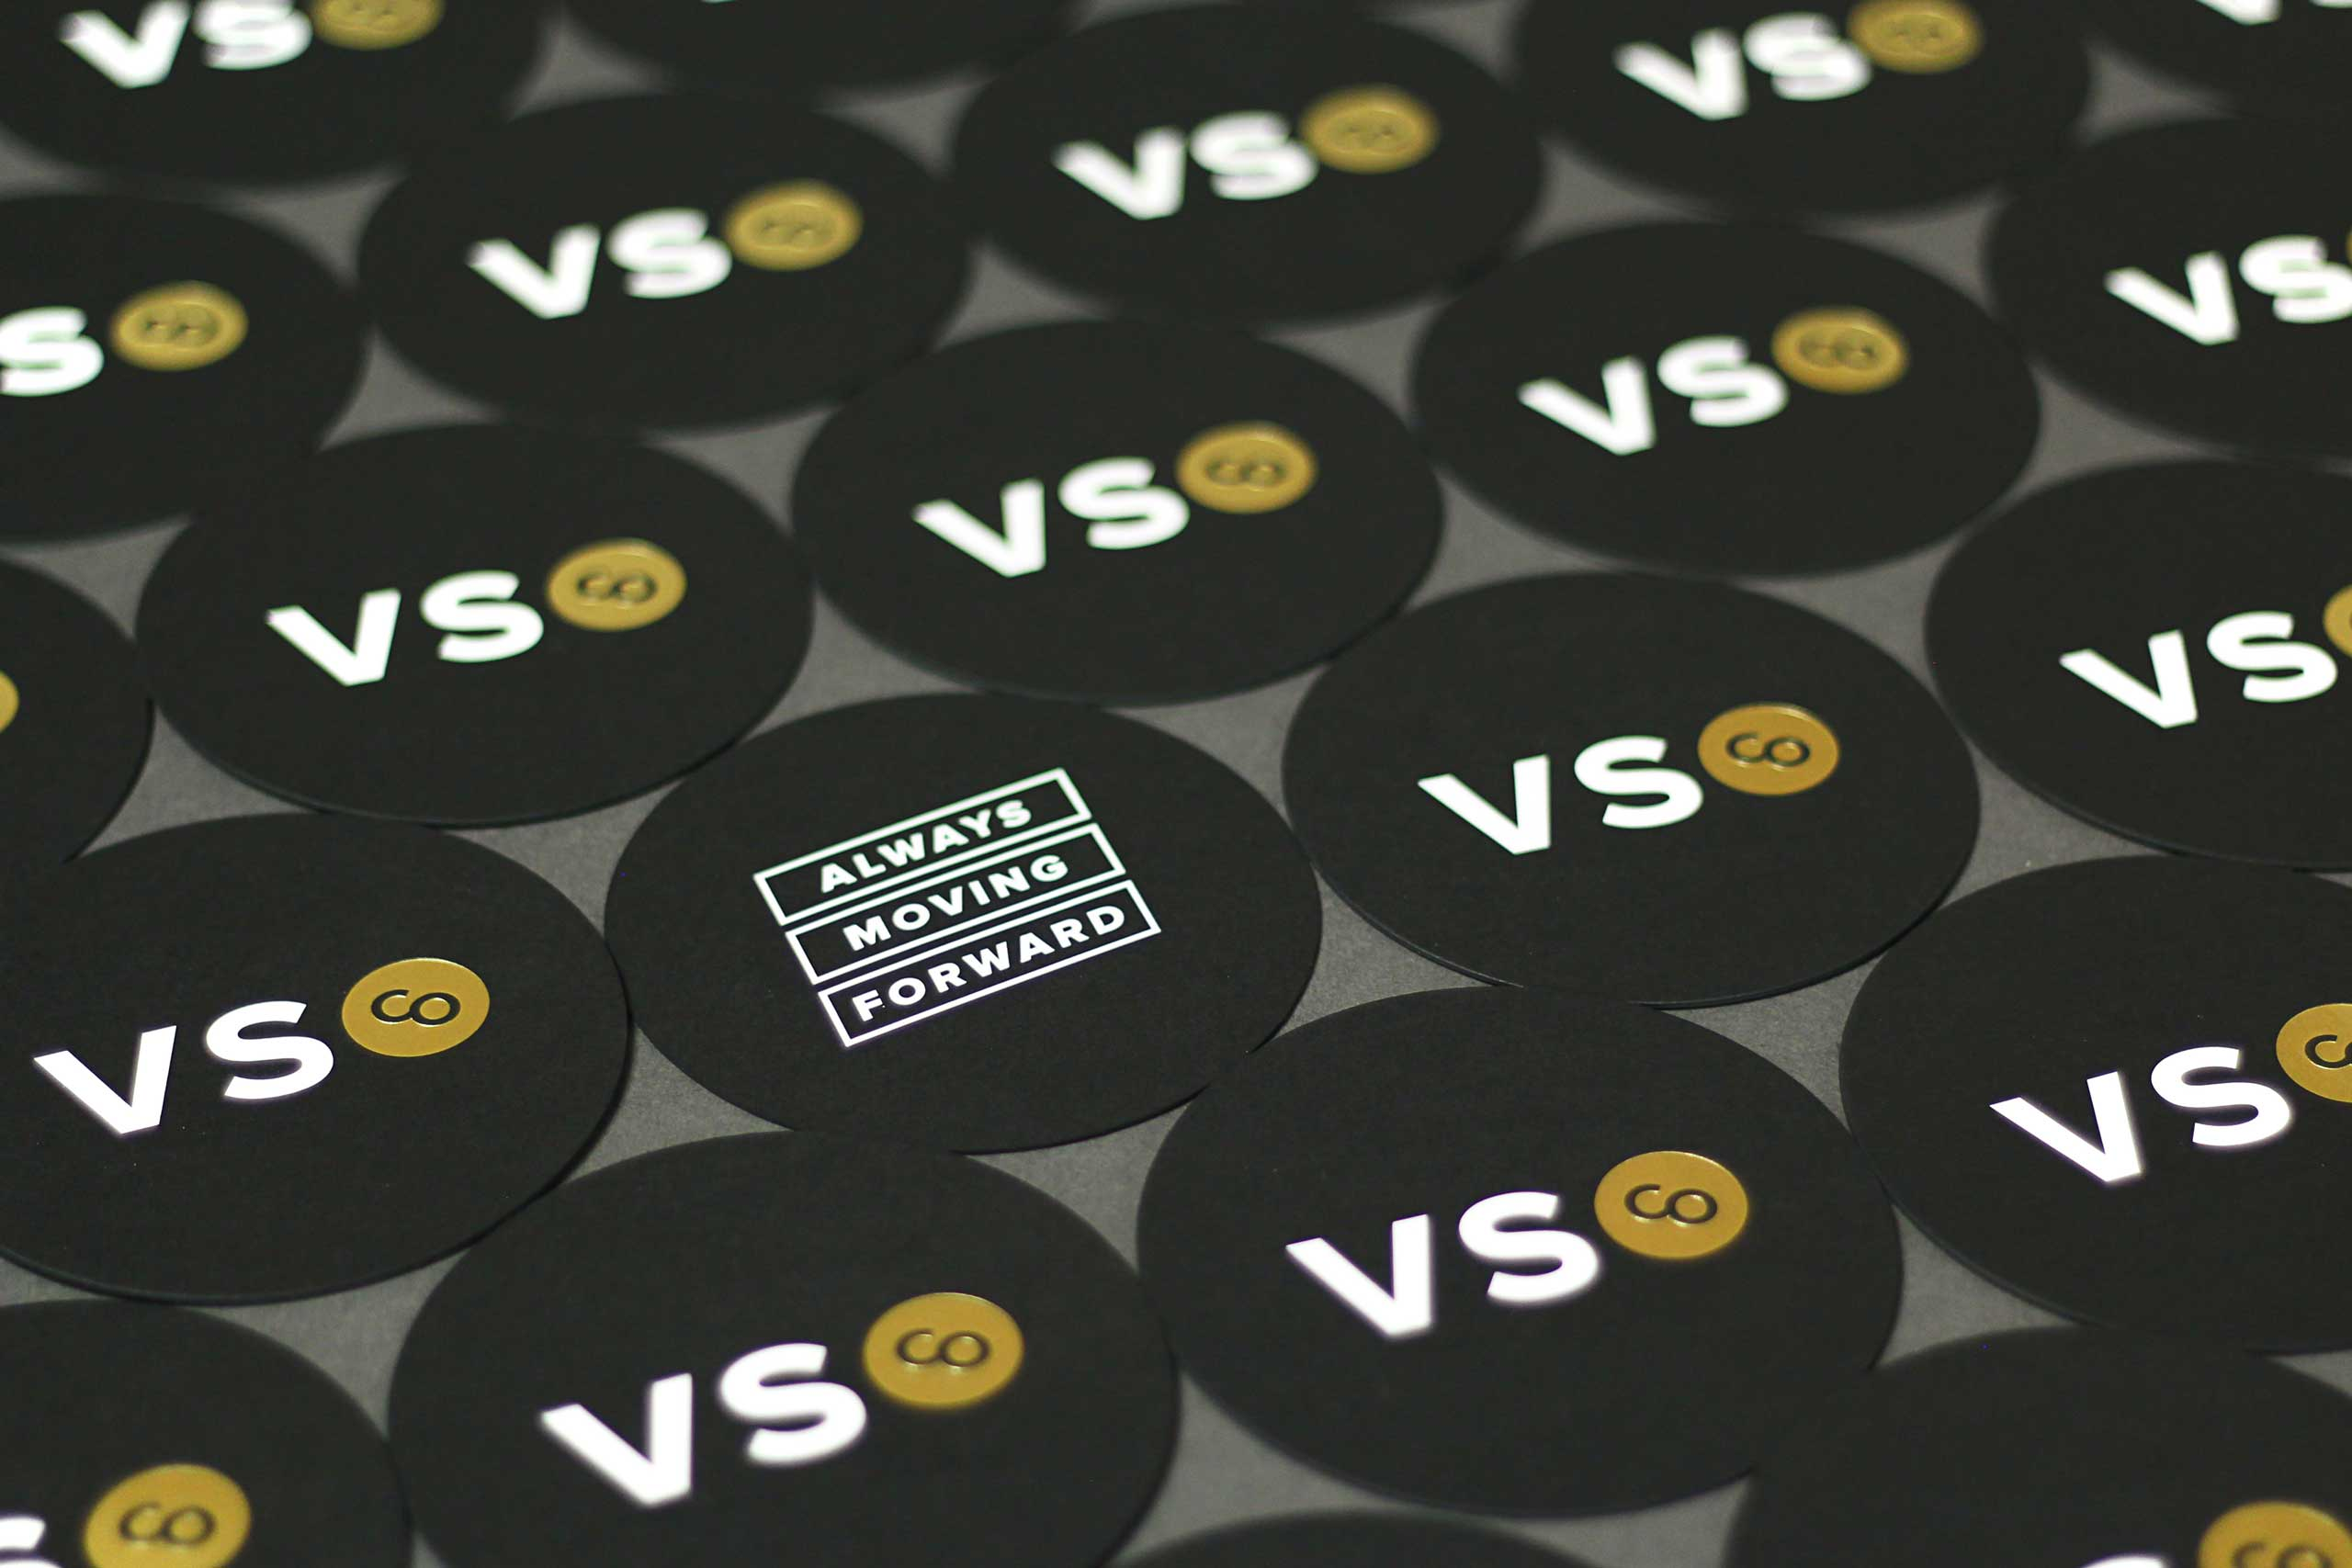 VSCO Moving Forward foil Coasters